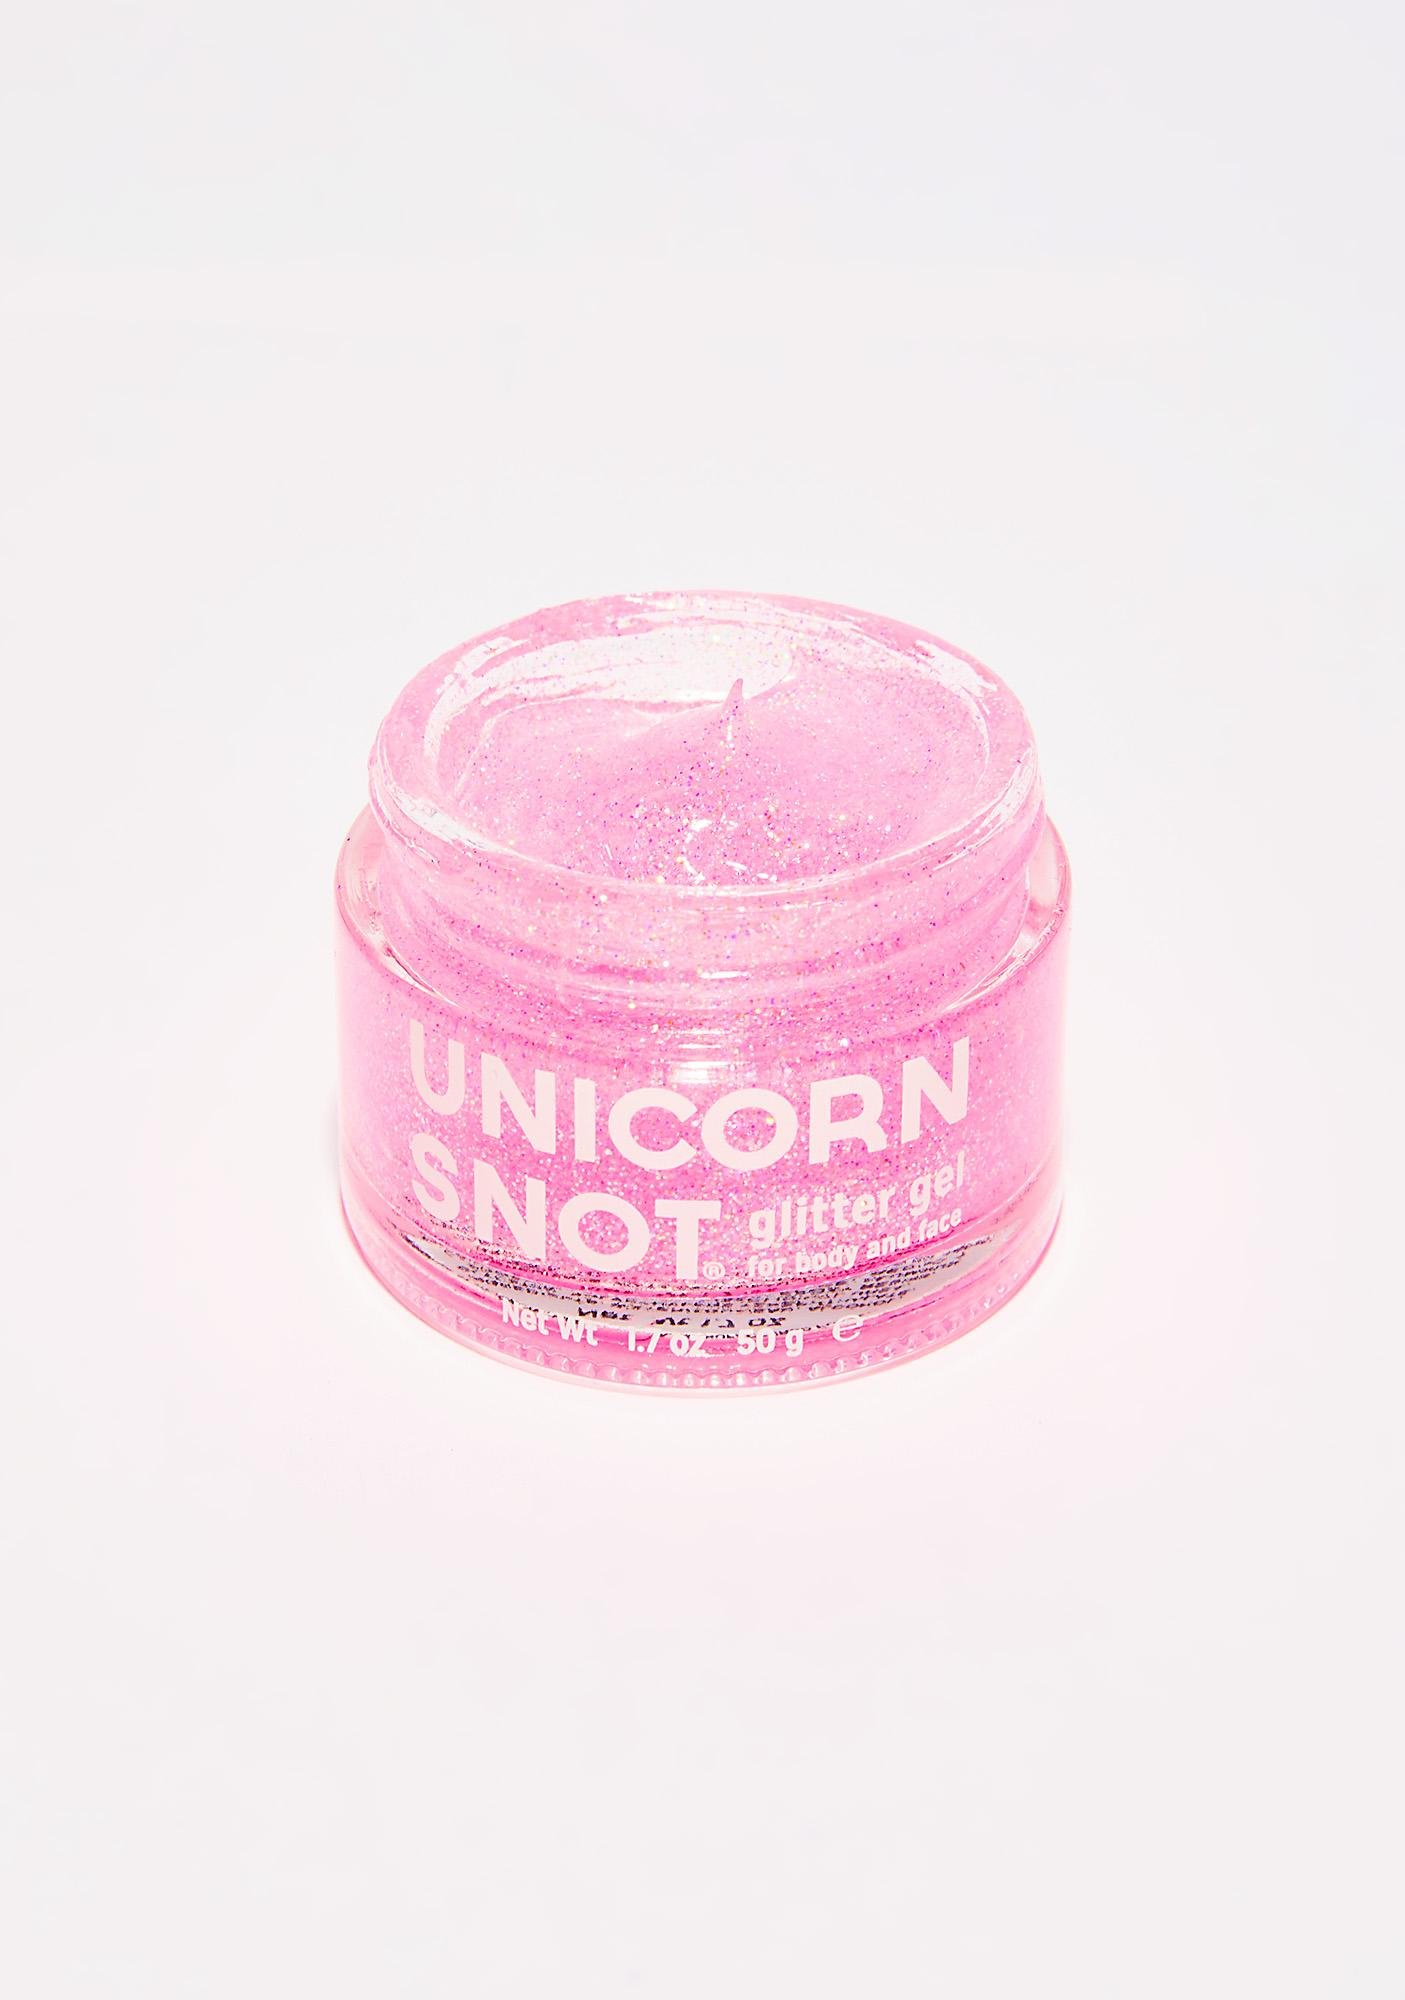 Unicorn Snot Unicorn Snot Pink Glitter Gel